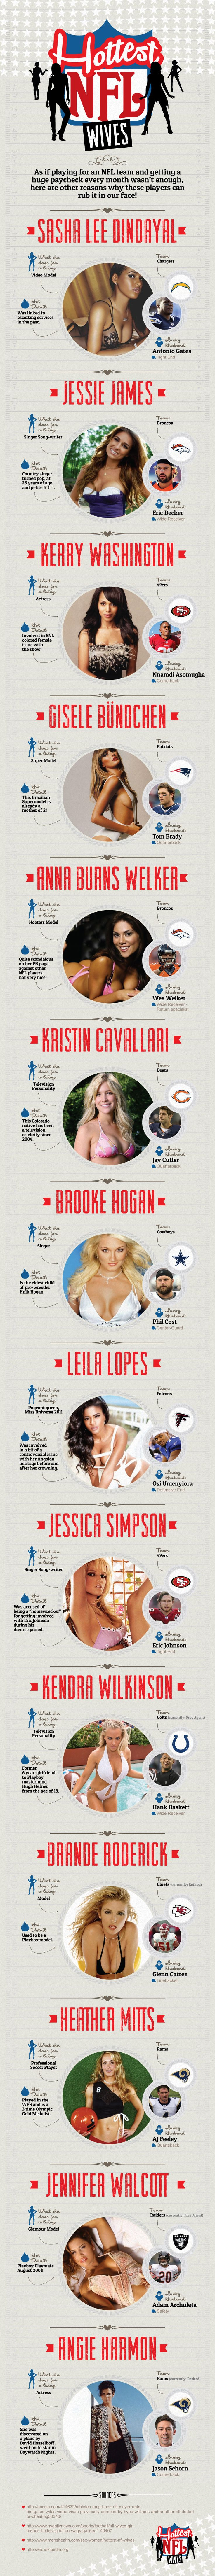 Hot NFL WAGs -May May May lucky fellows!